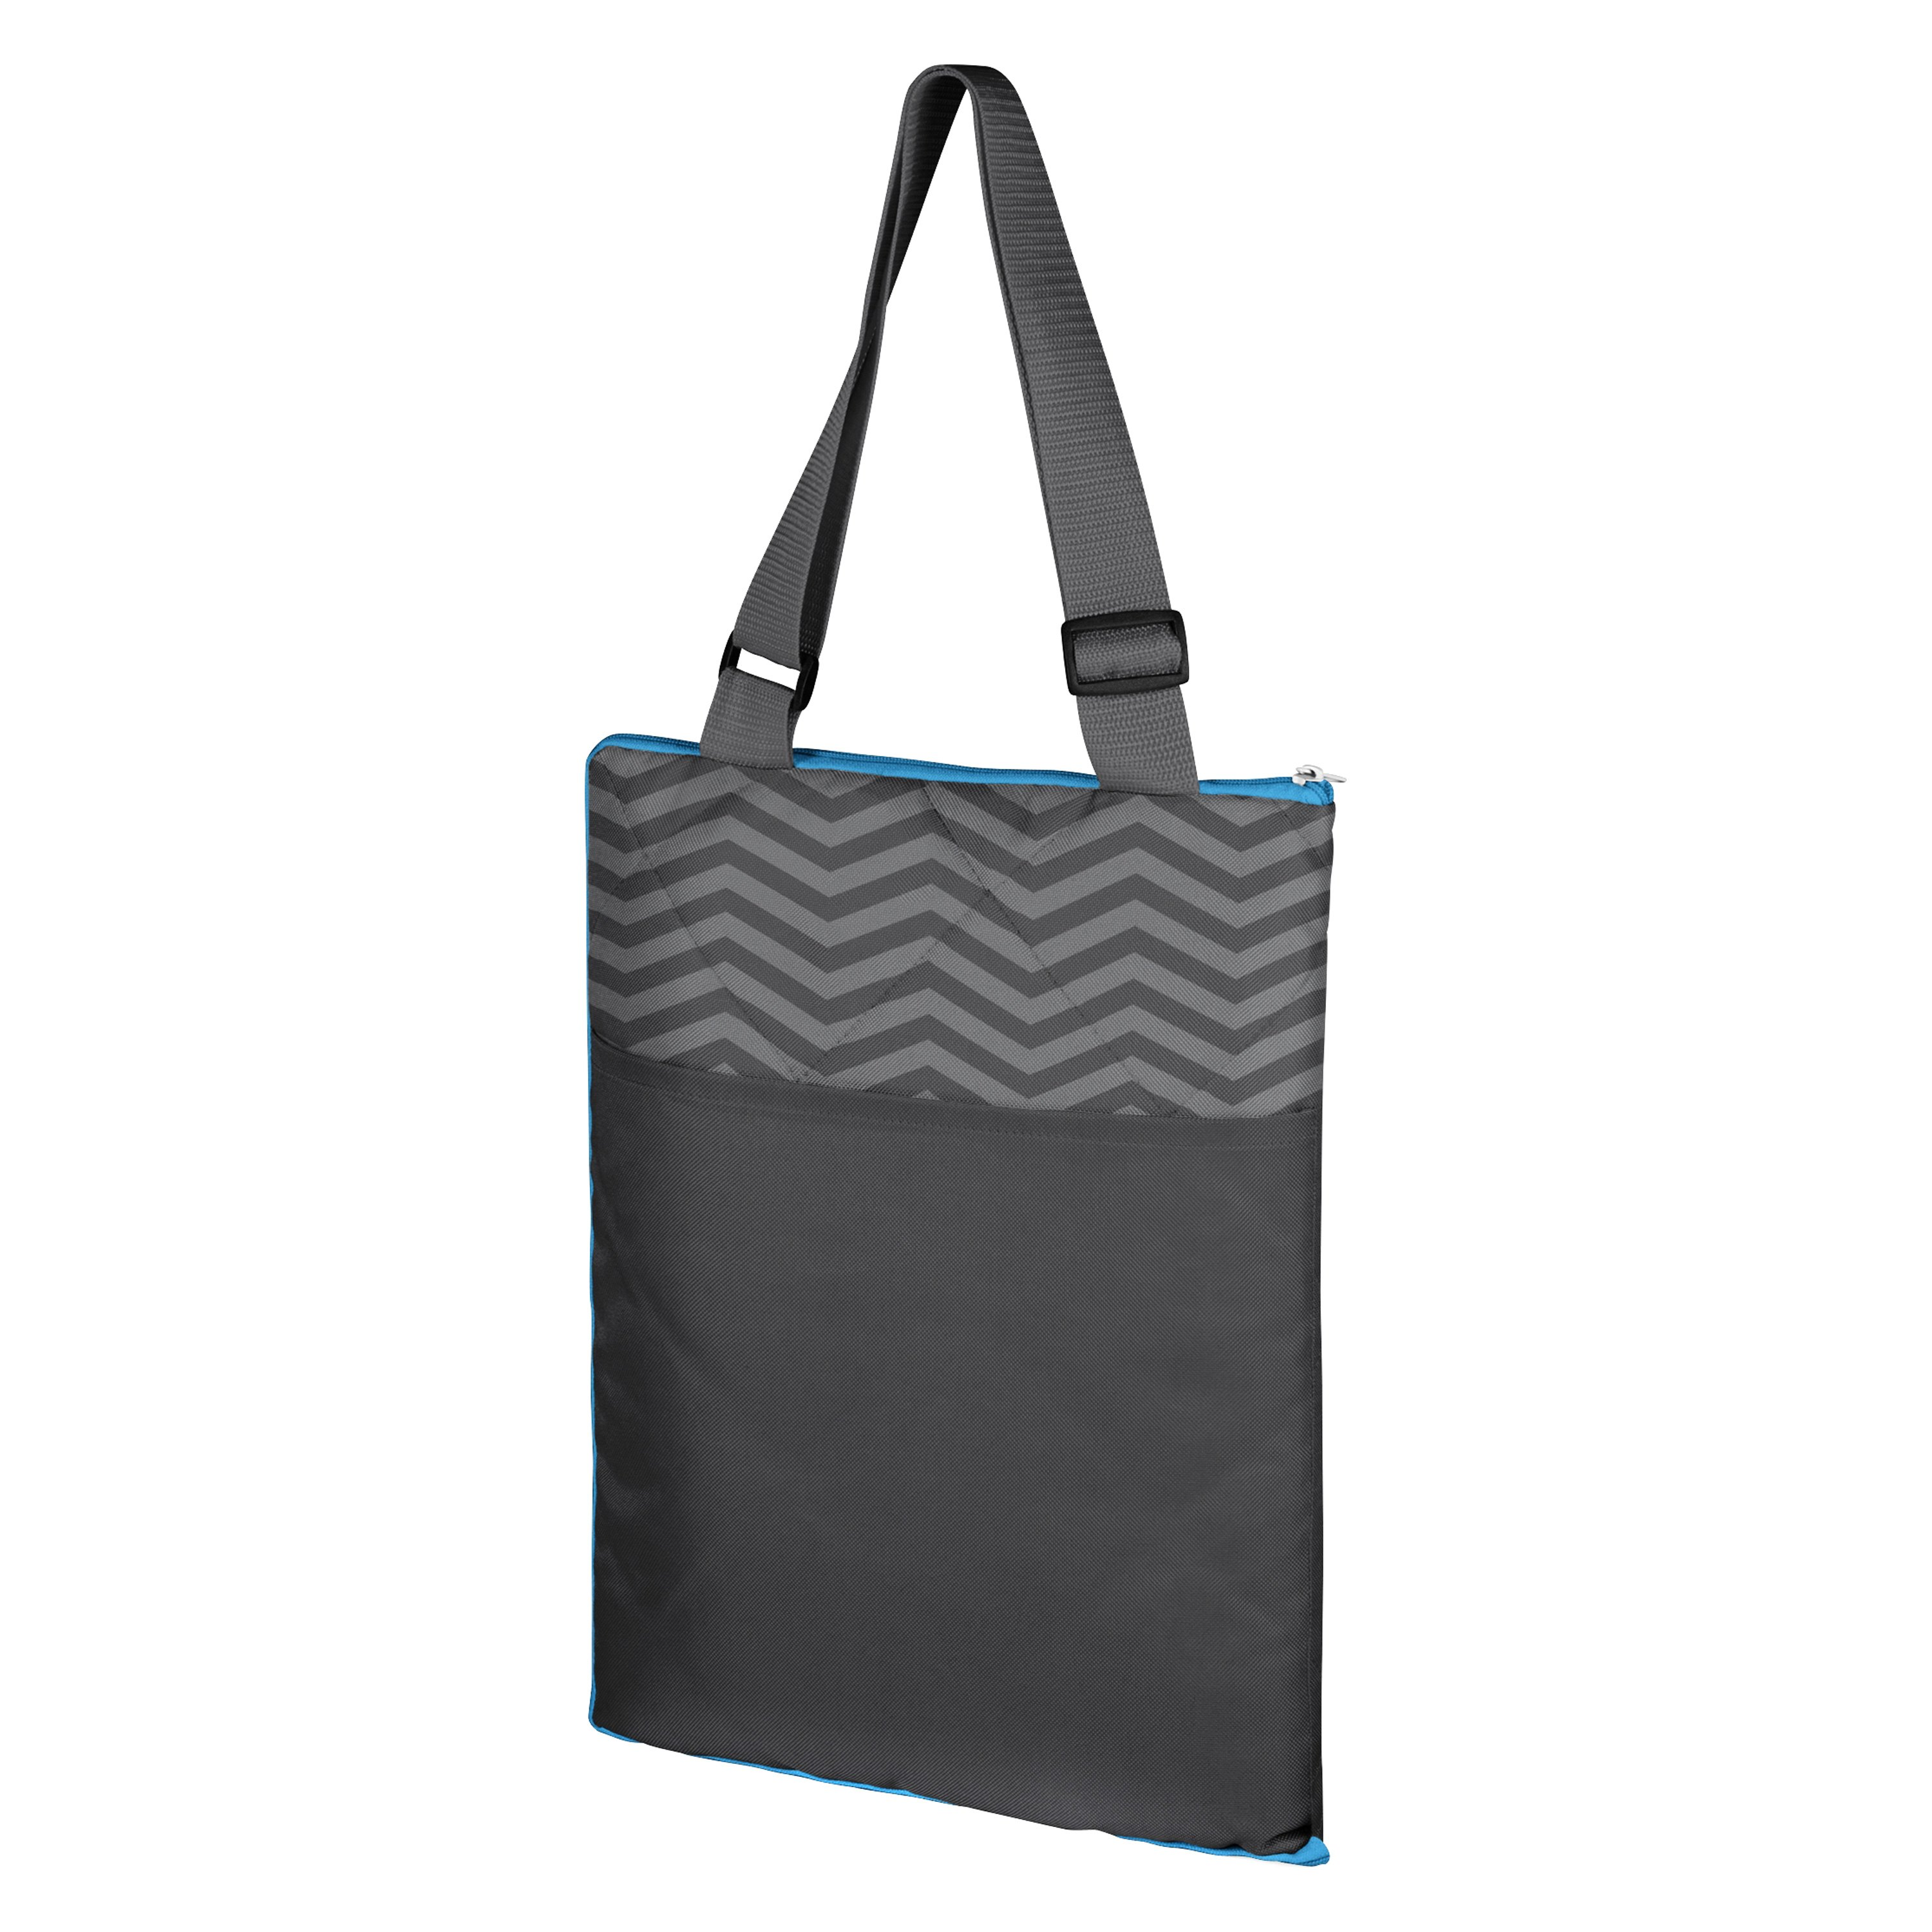 Picnic Time 174 Vista Outdoor Blanket Tote